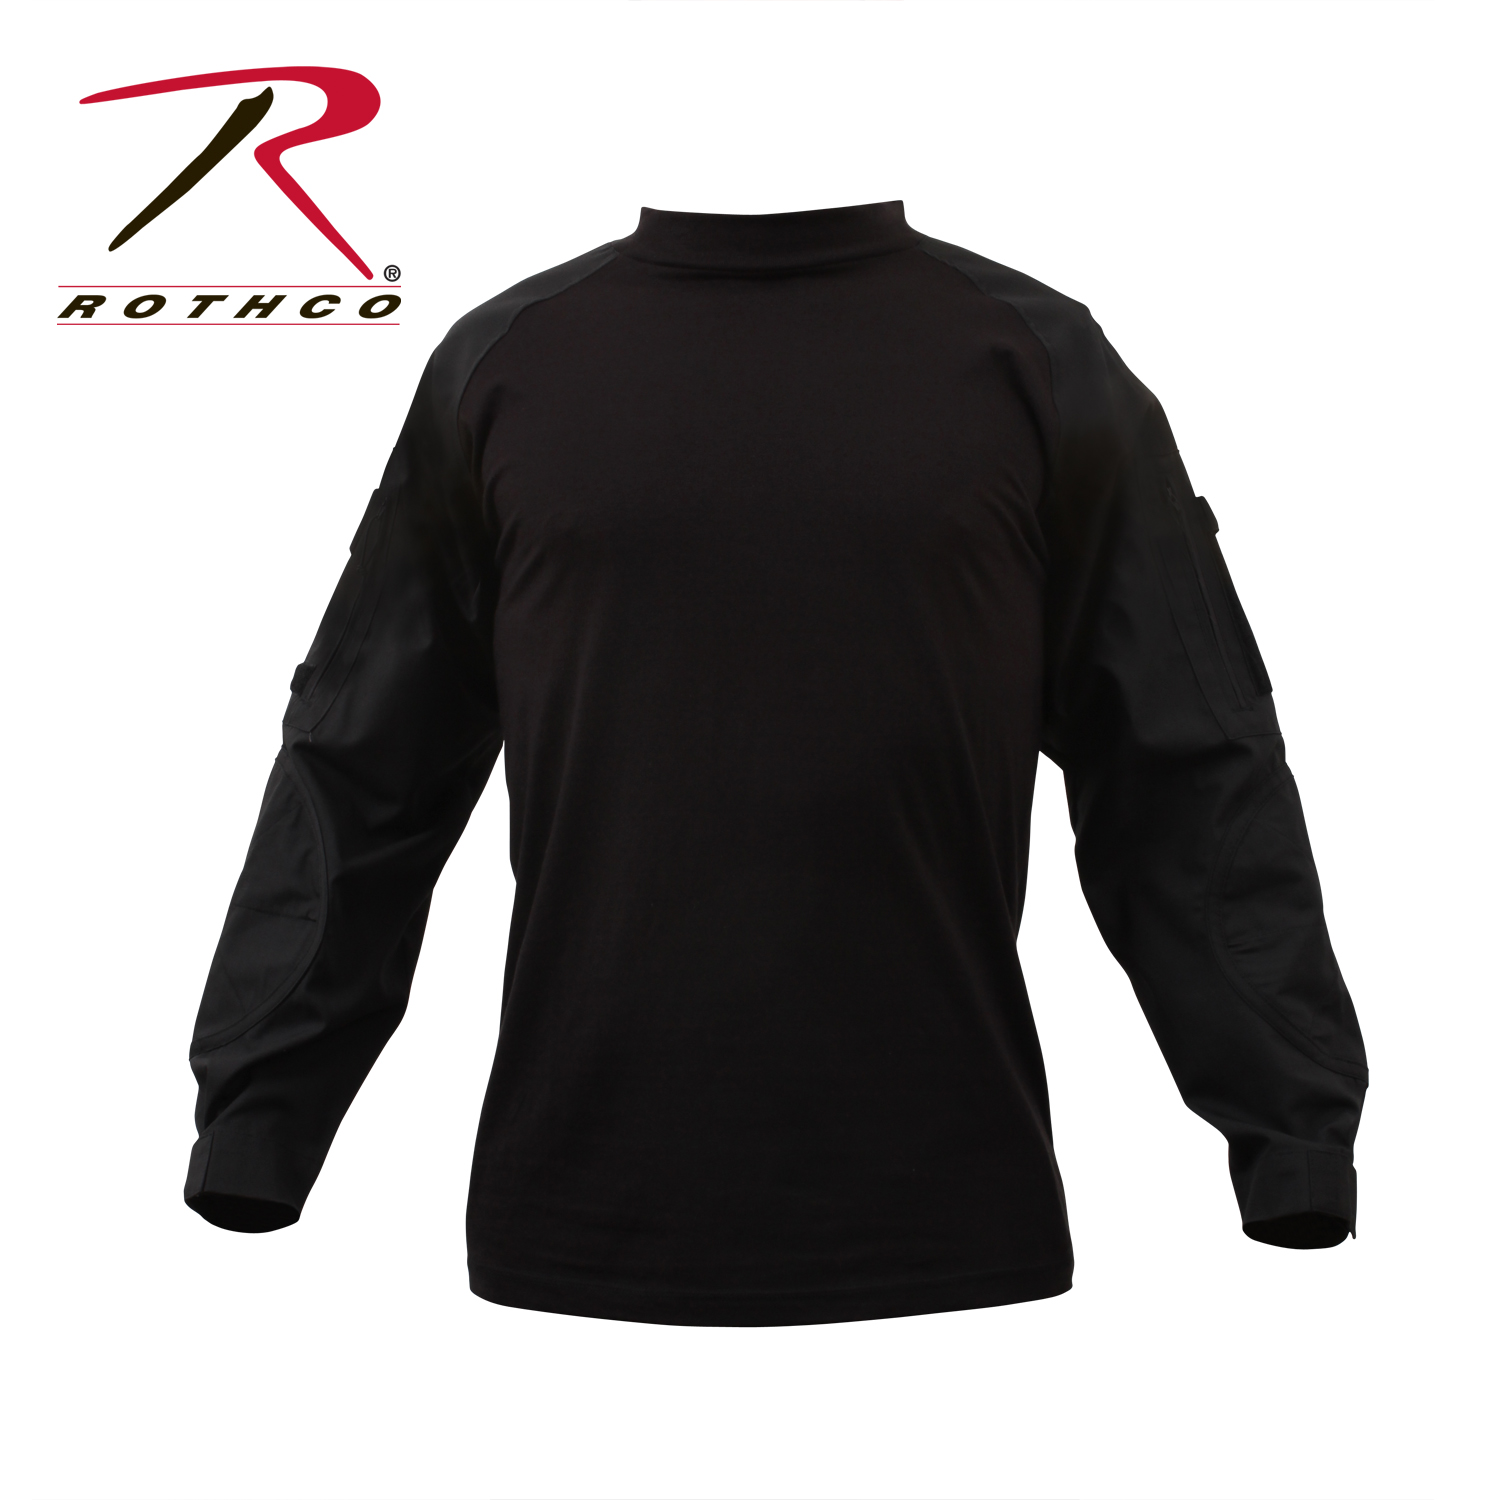 ROTHCO MILITARY COMBAT SHIRT – BLACK